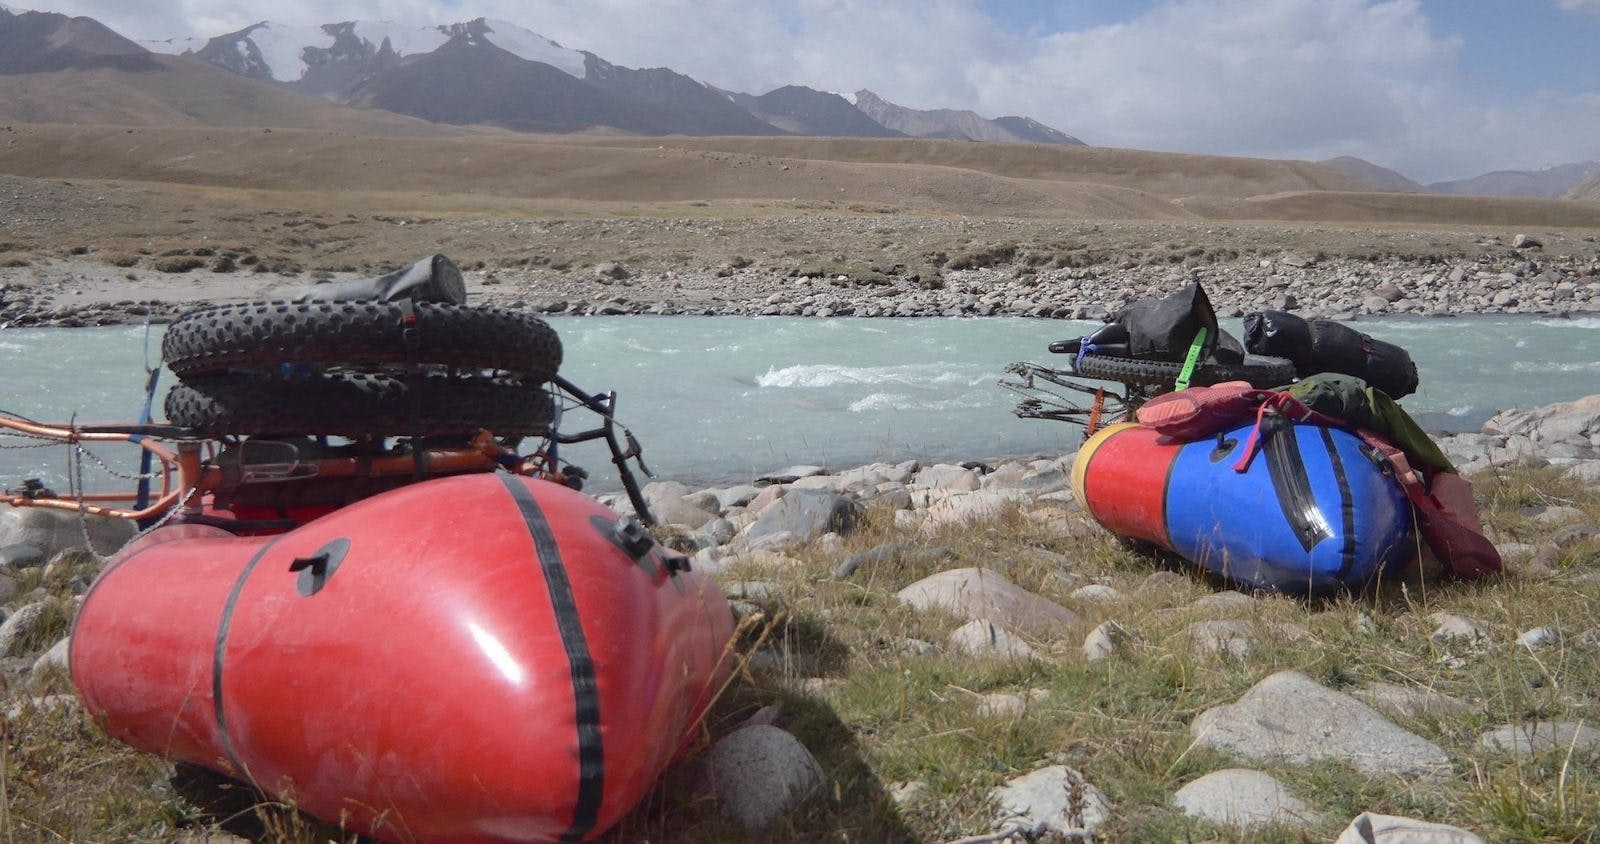 Kit Guncheon and Mike McGrath in Kyrgyzstan.